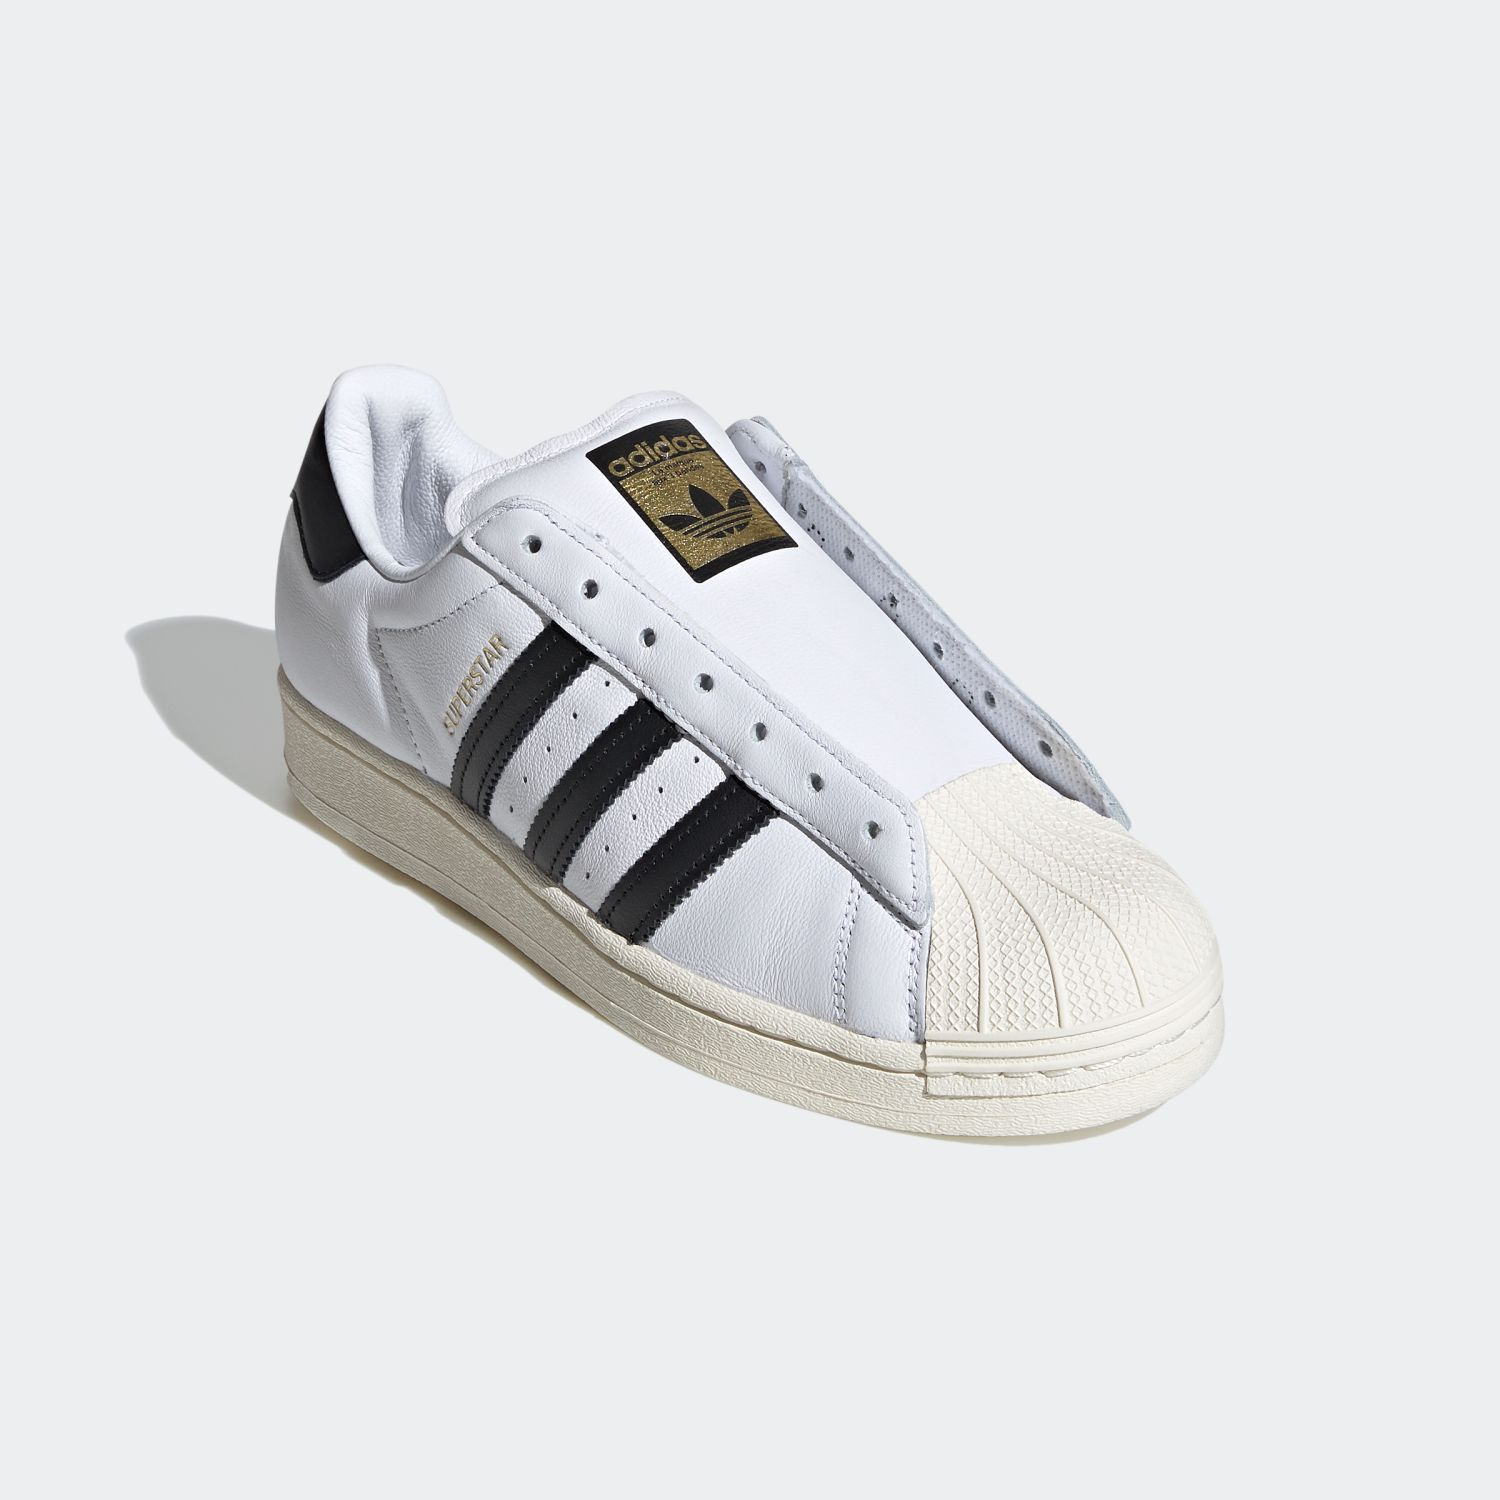 SUPERSTAR x Adidas Laceless White Black [4]